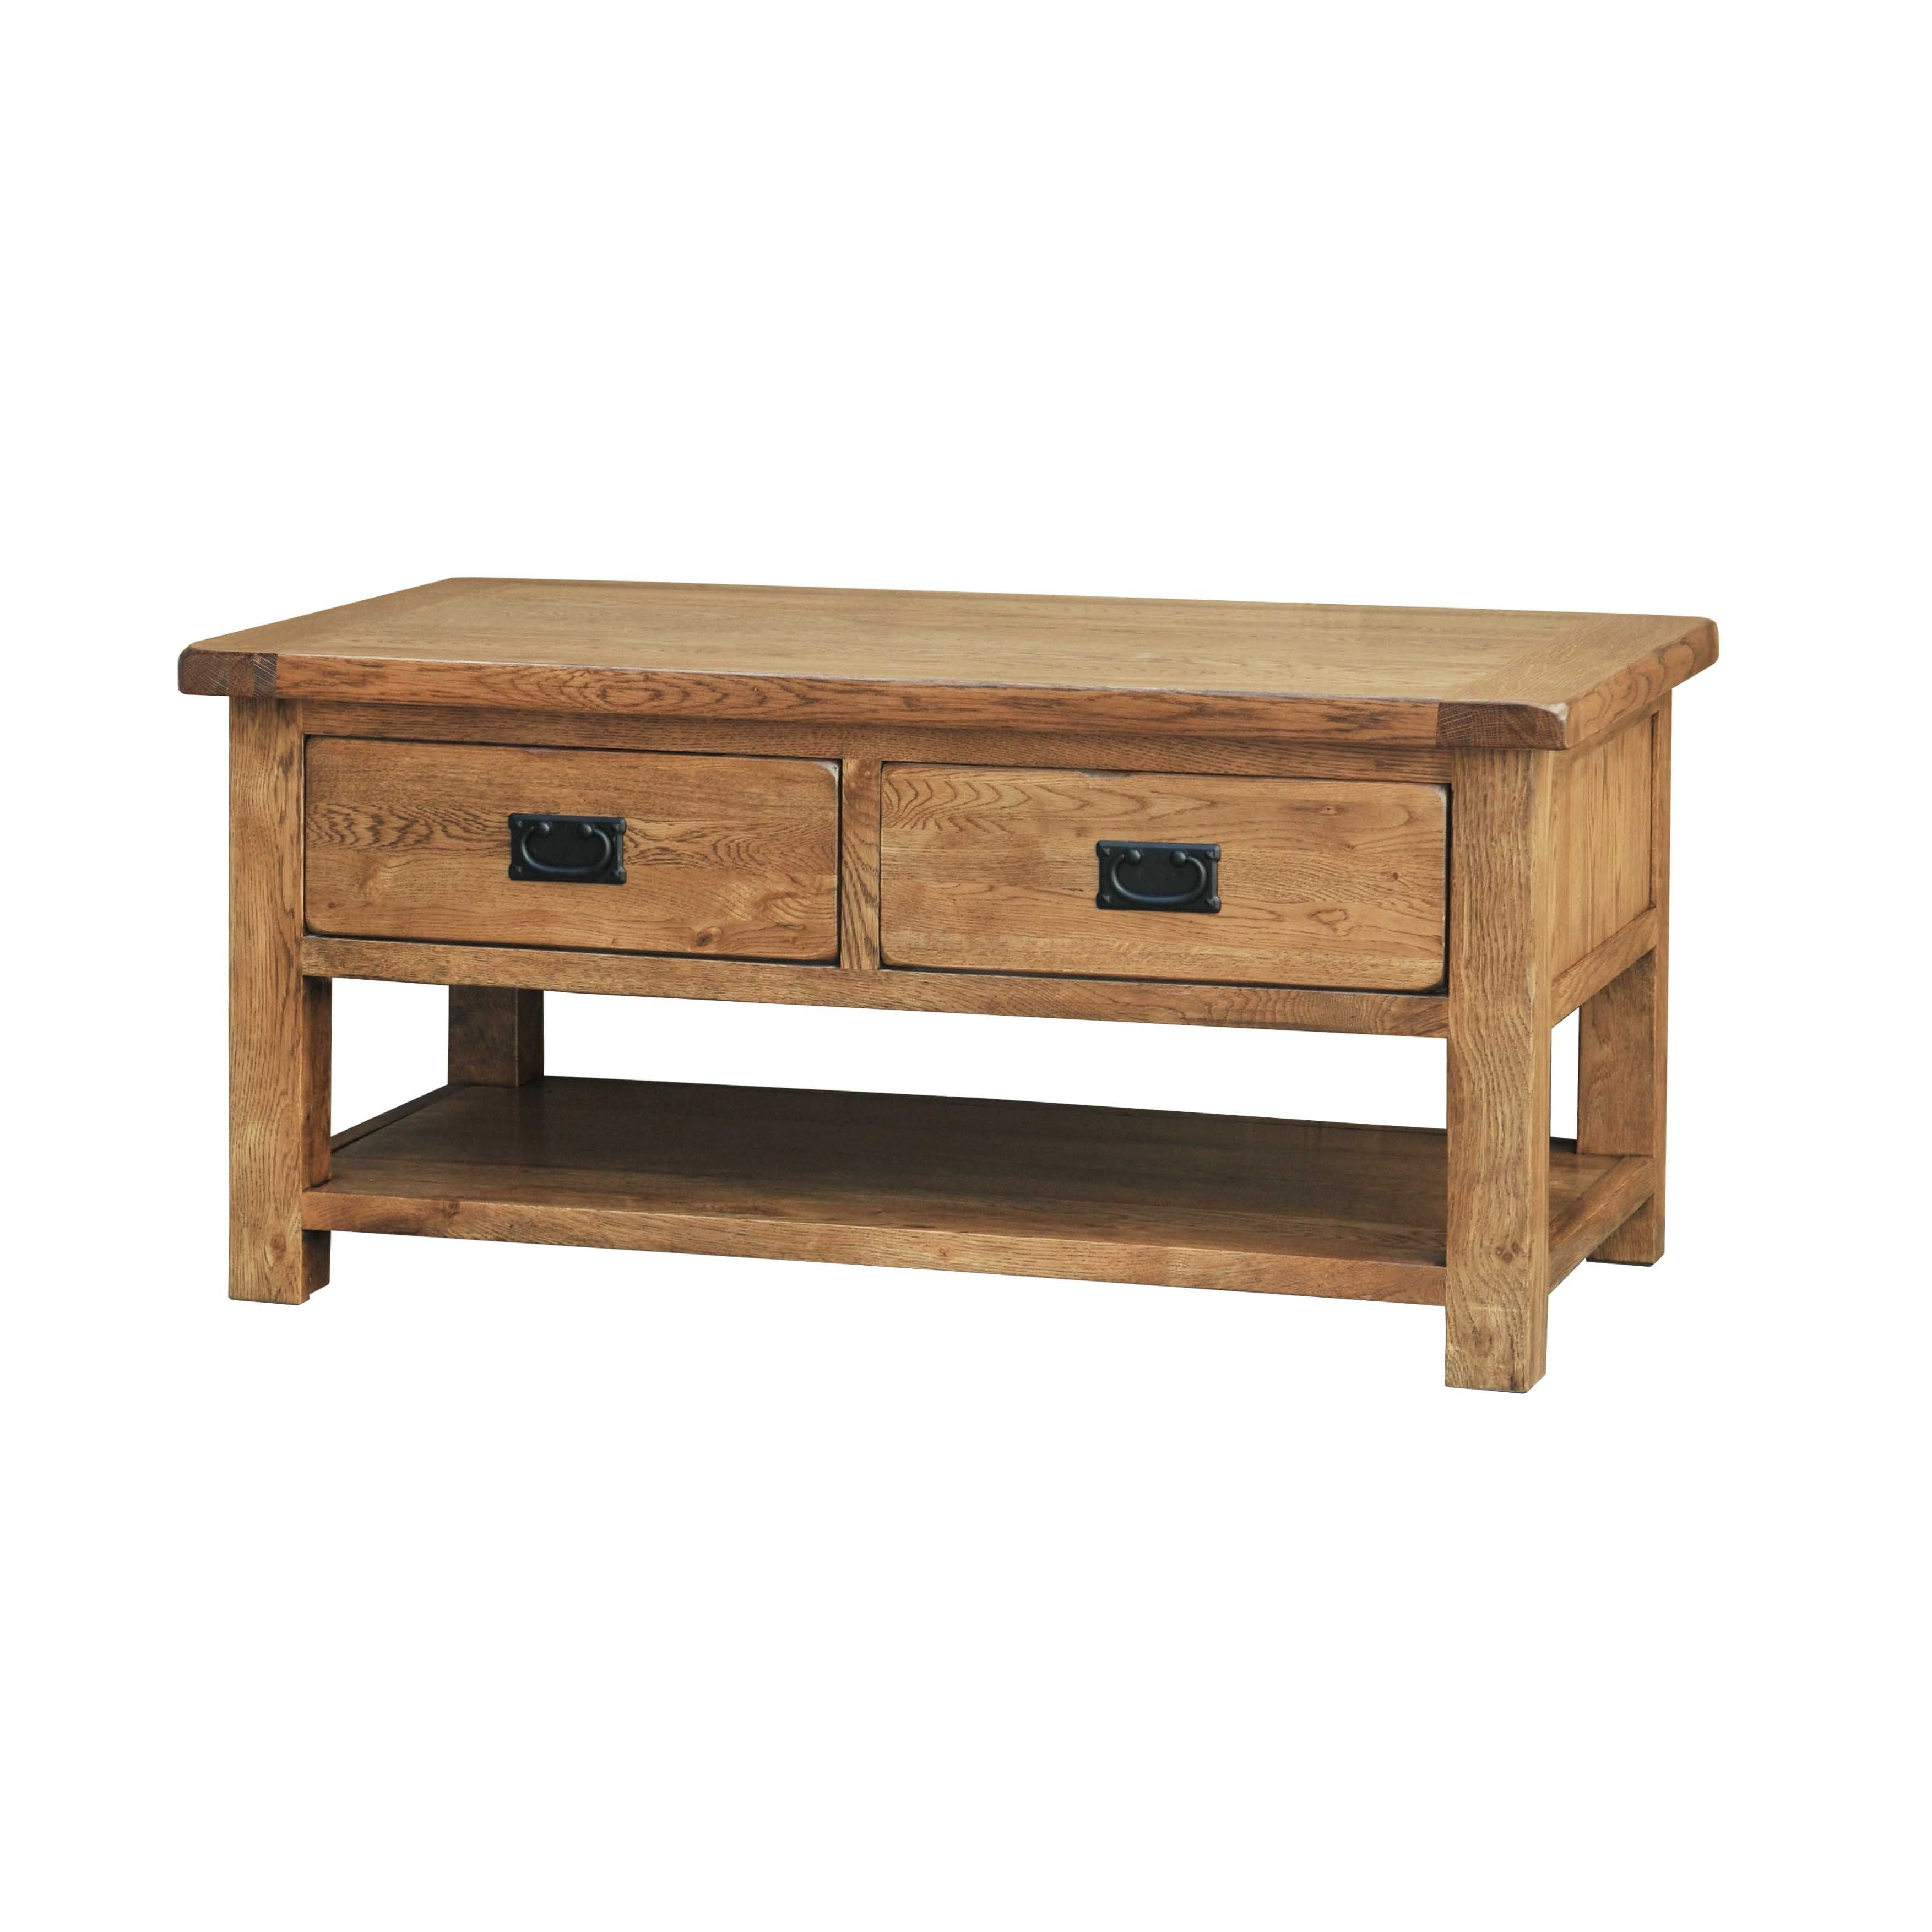 Casa bordeaux coffee table with drawers leekes Coffee table drawers